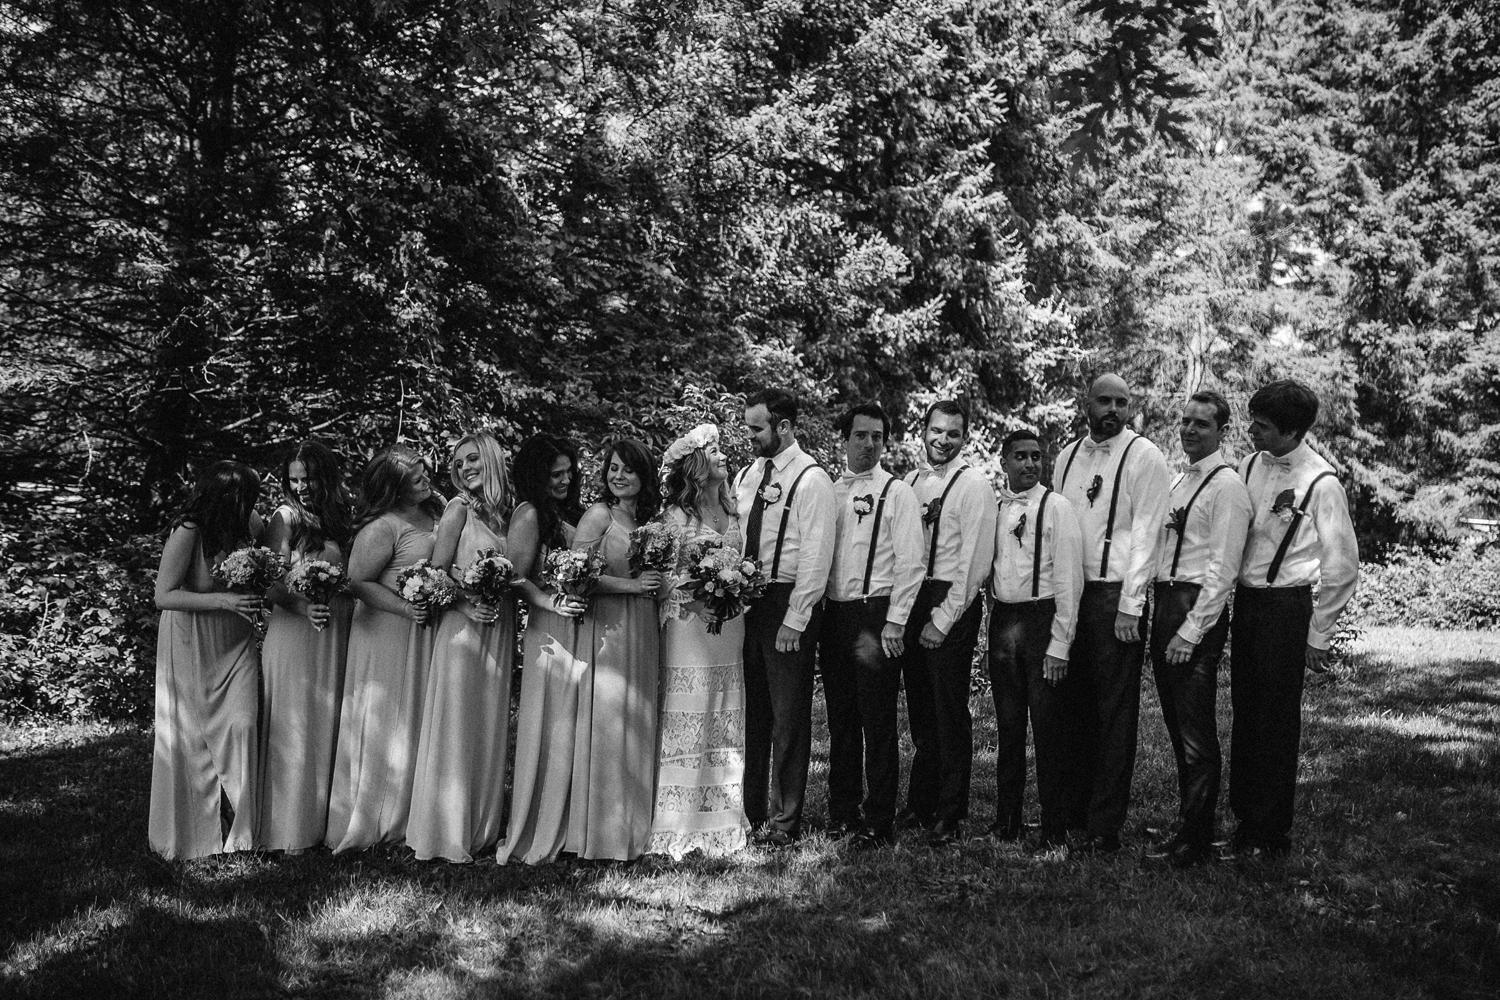 cumberland heritage museum wedding - kerry ford photography-031.jpg